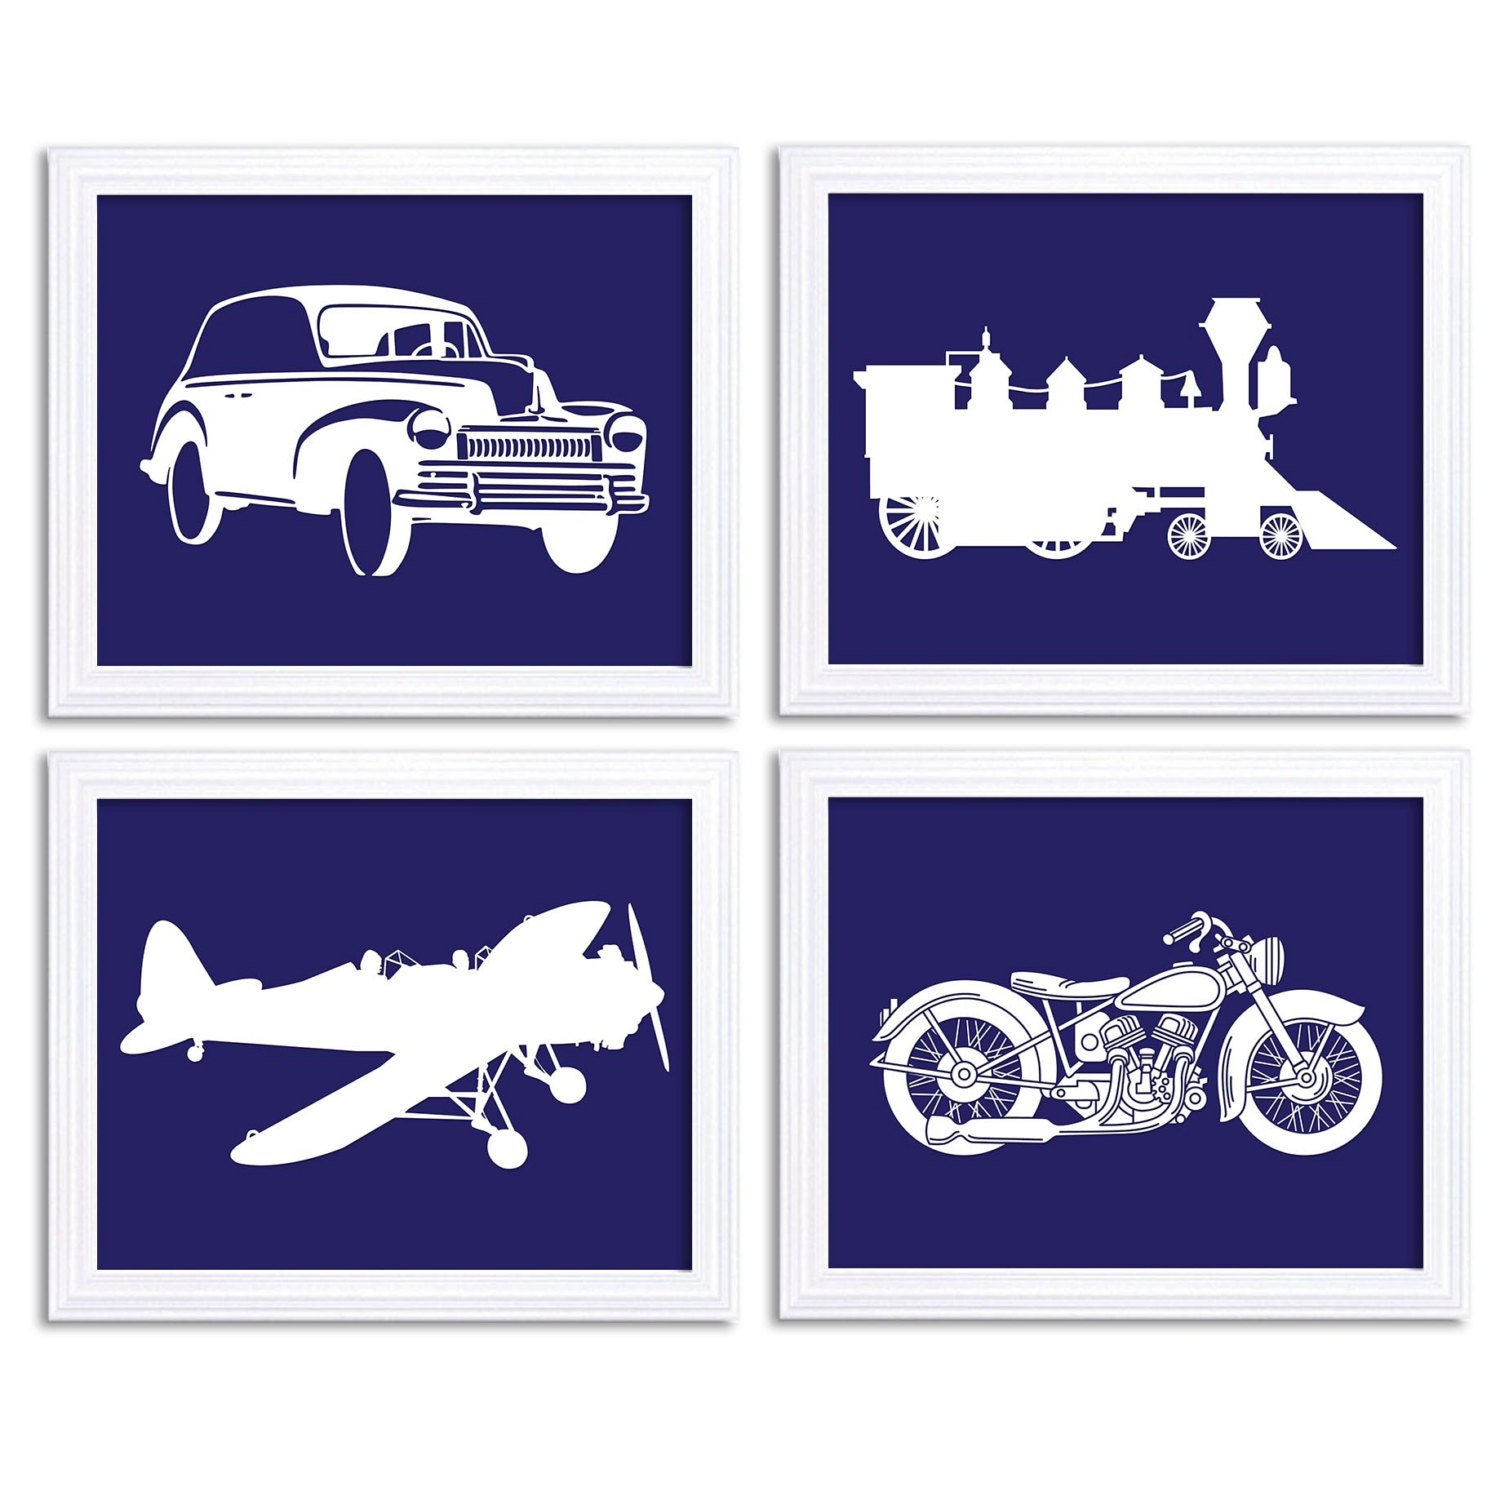 Navy Blue Old Cars Classic Antique Vintage Car Train Airplane Plane Motorcycle Set of 4 Prints Boys